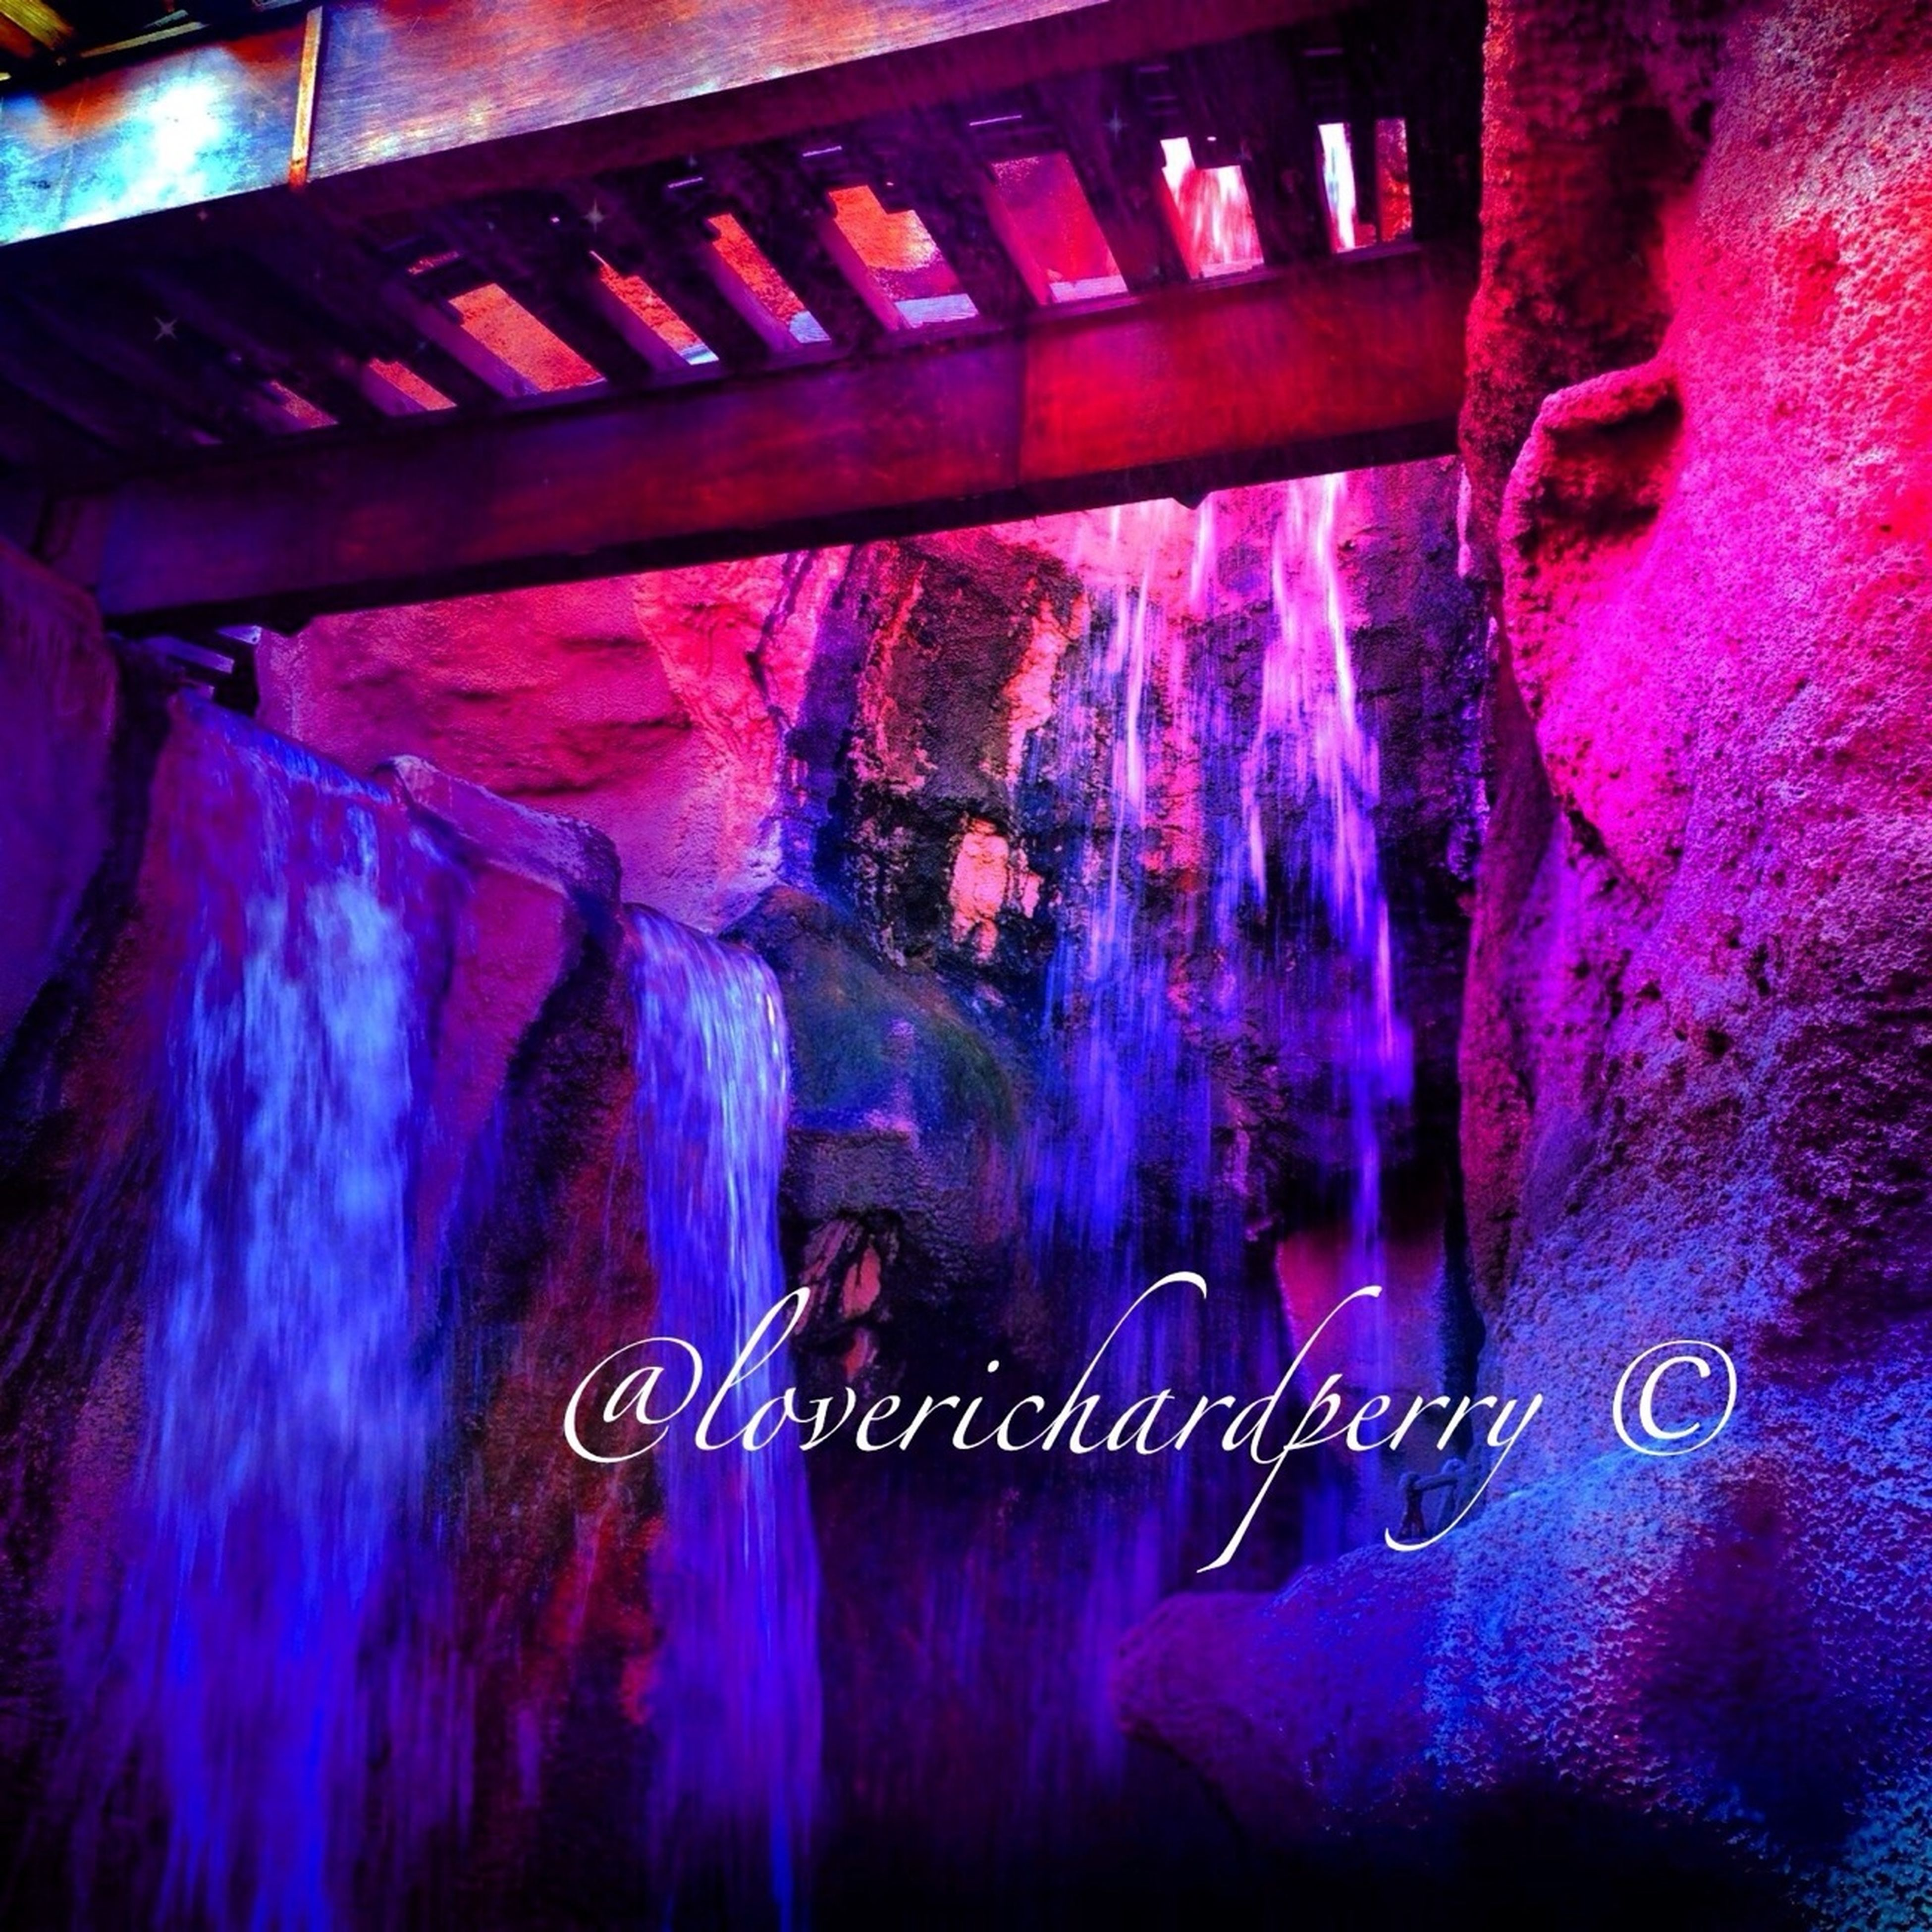 indoors, illuminated, wall - building feature, light - natural phenomenon, built structure, no people, night, reflection, abandoned, high angle view, close-up, lighting equipment, arts culture and entertainment, blue, architecture, wall, multi colored, hanging, graffiti, old